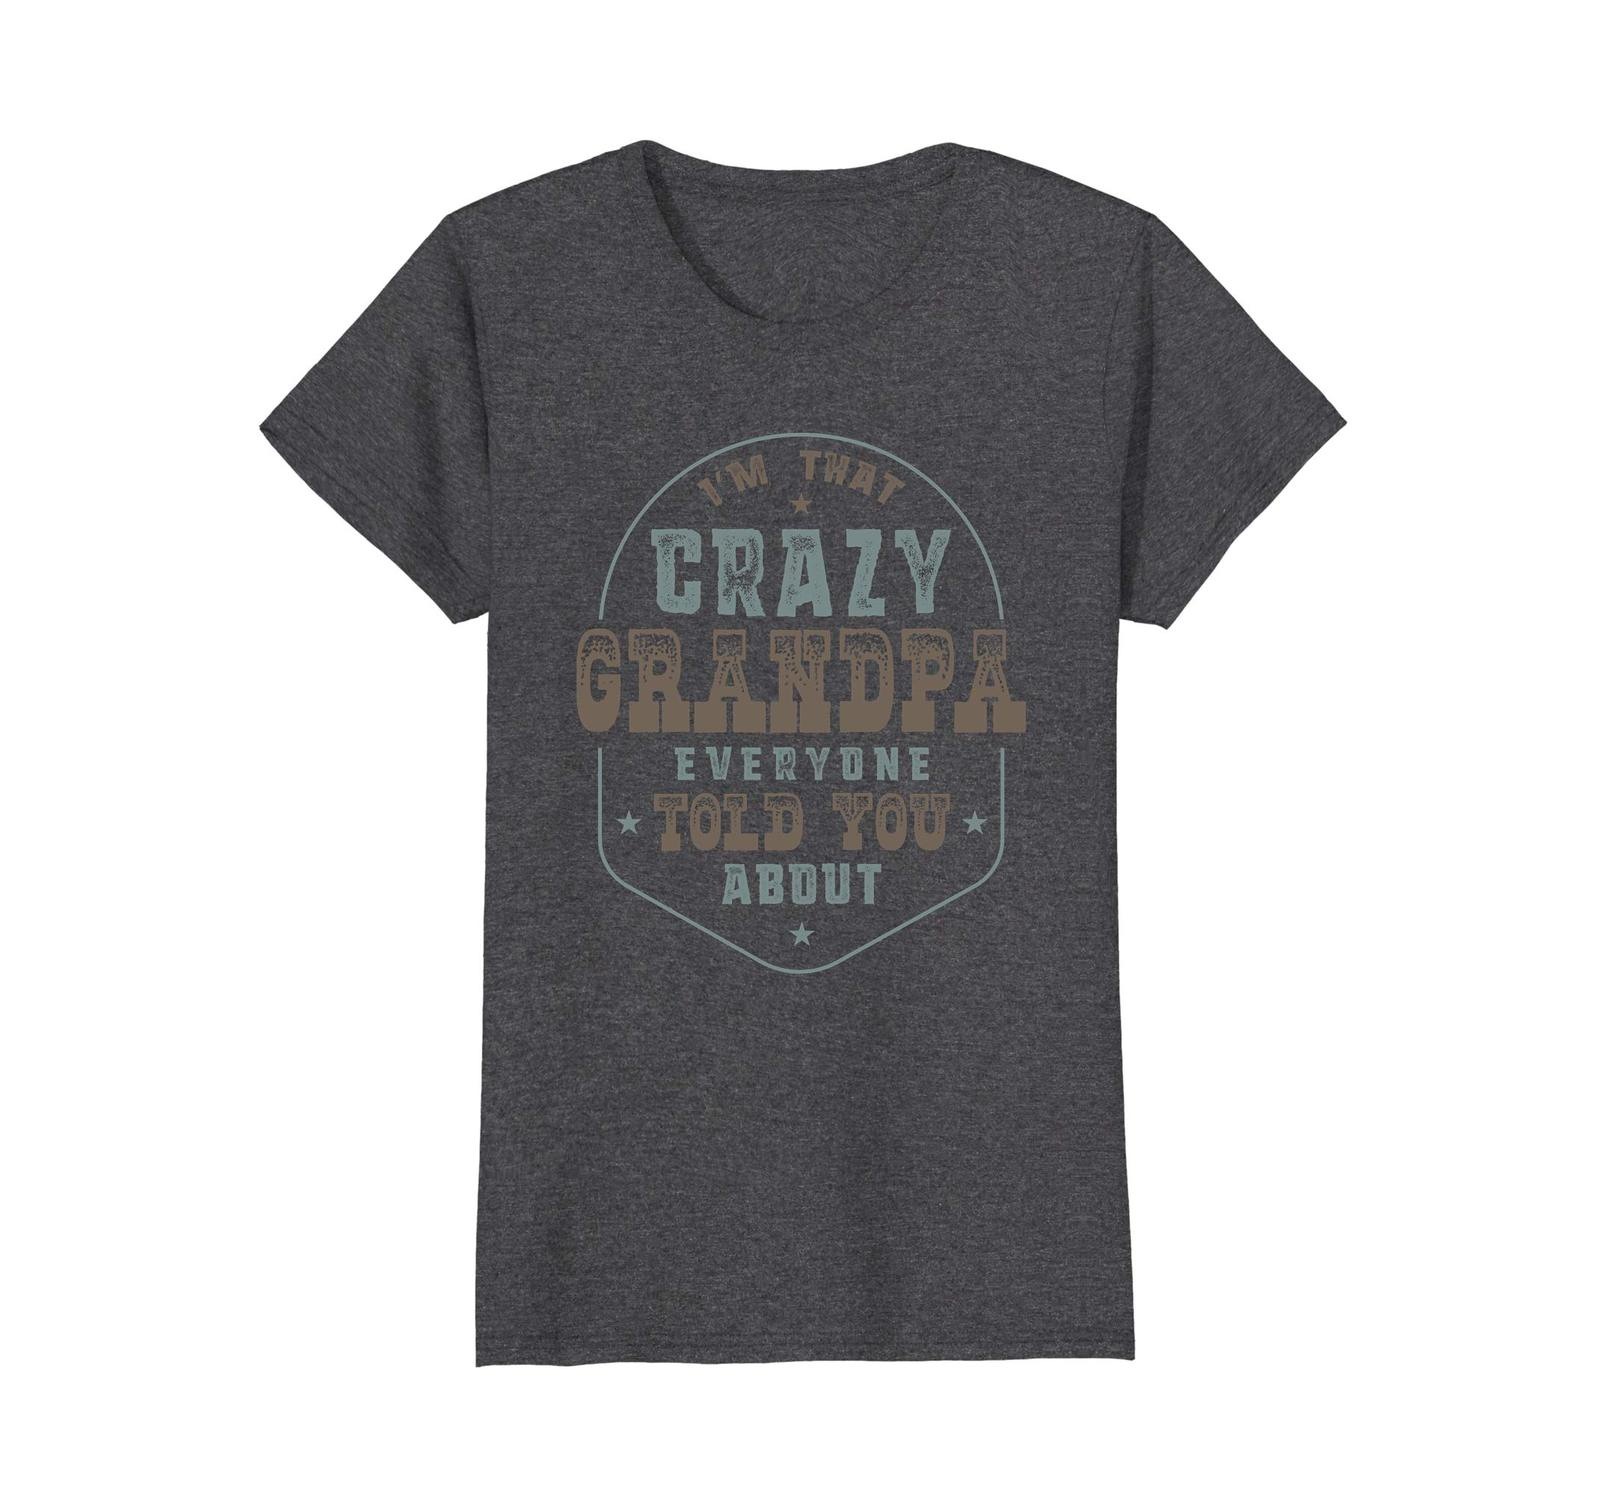 Primary image for Funny Shirts - I'm That Crazy Grandpa Everyone Told You About T-shirt Wowen